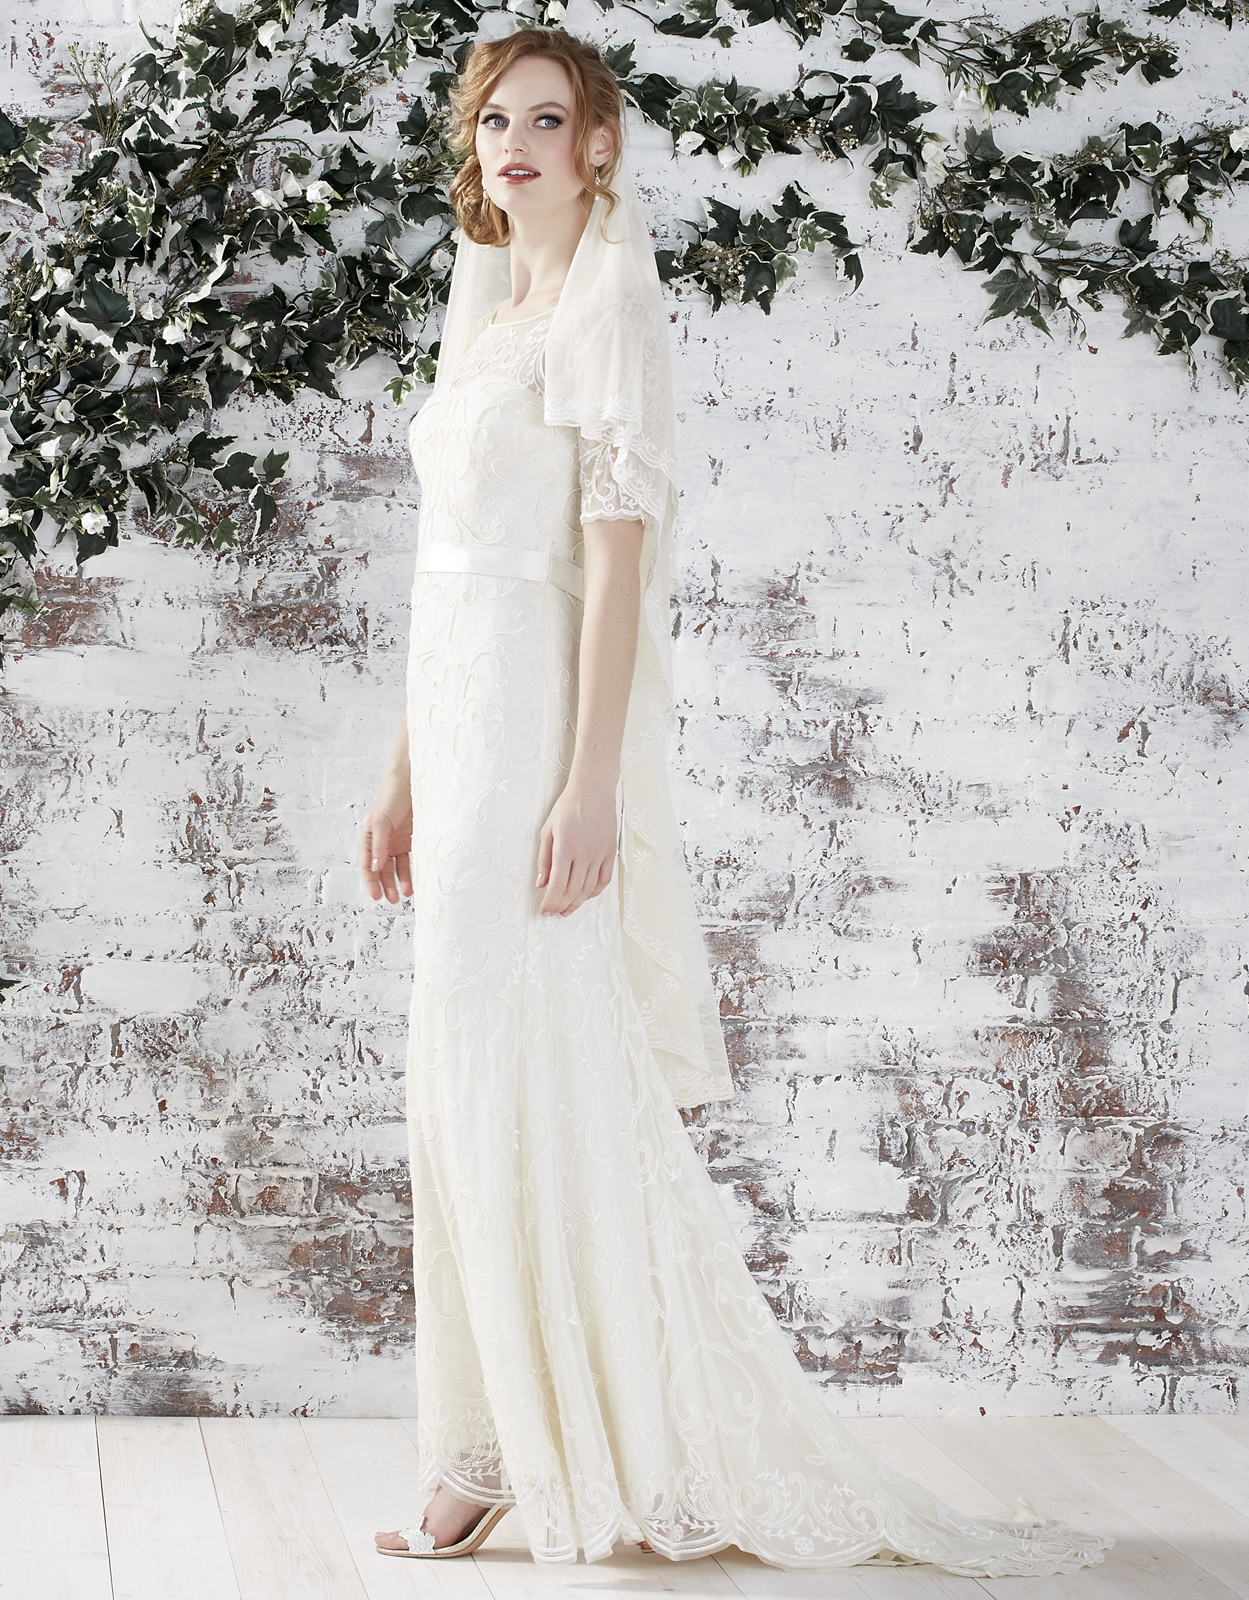 SS 2016 collection, monsoon bridal, high street wedding dresses